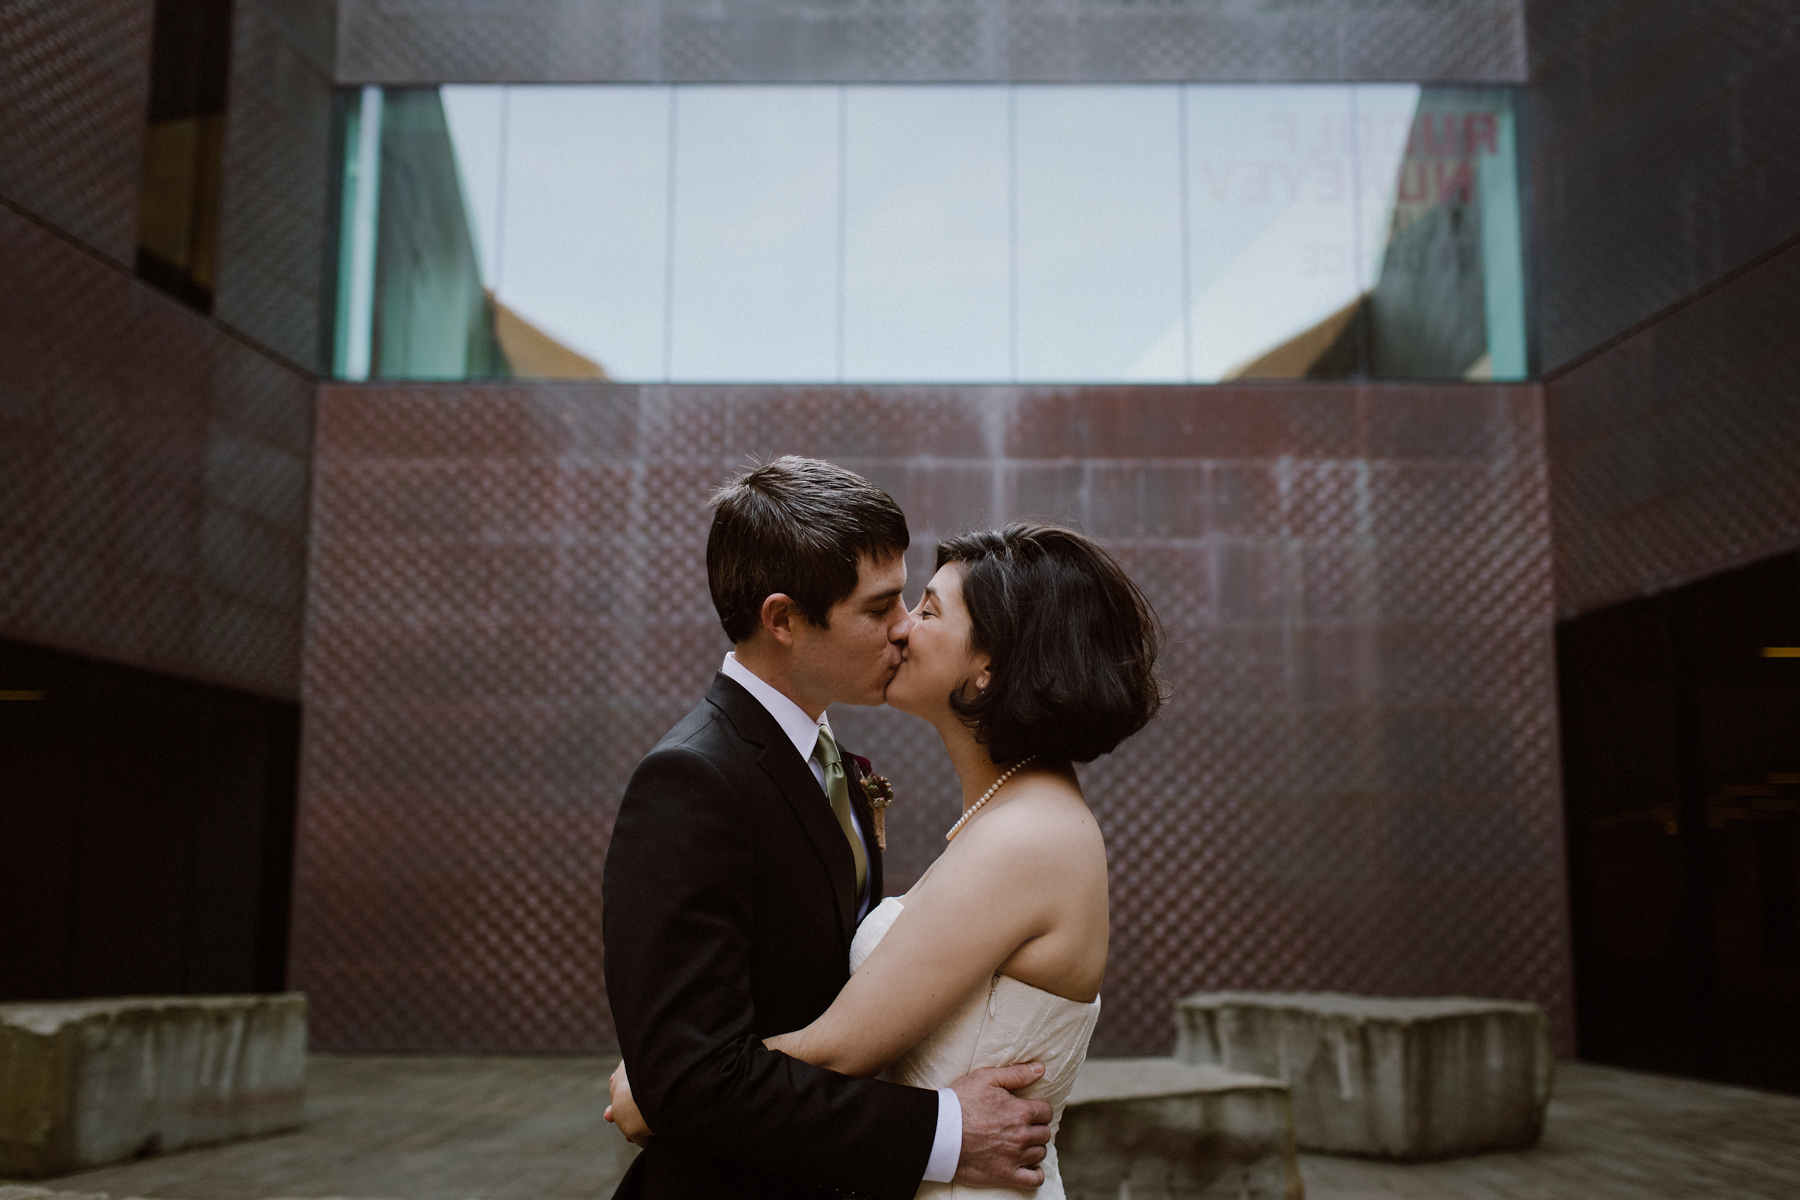 De Young Museum wedding portraits.